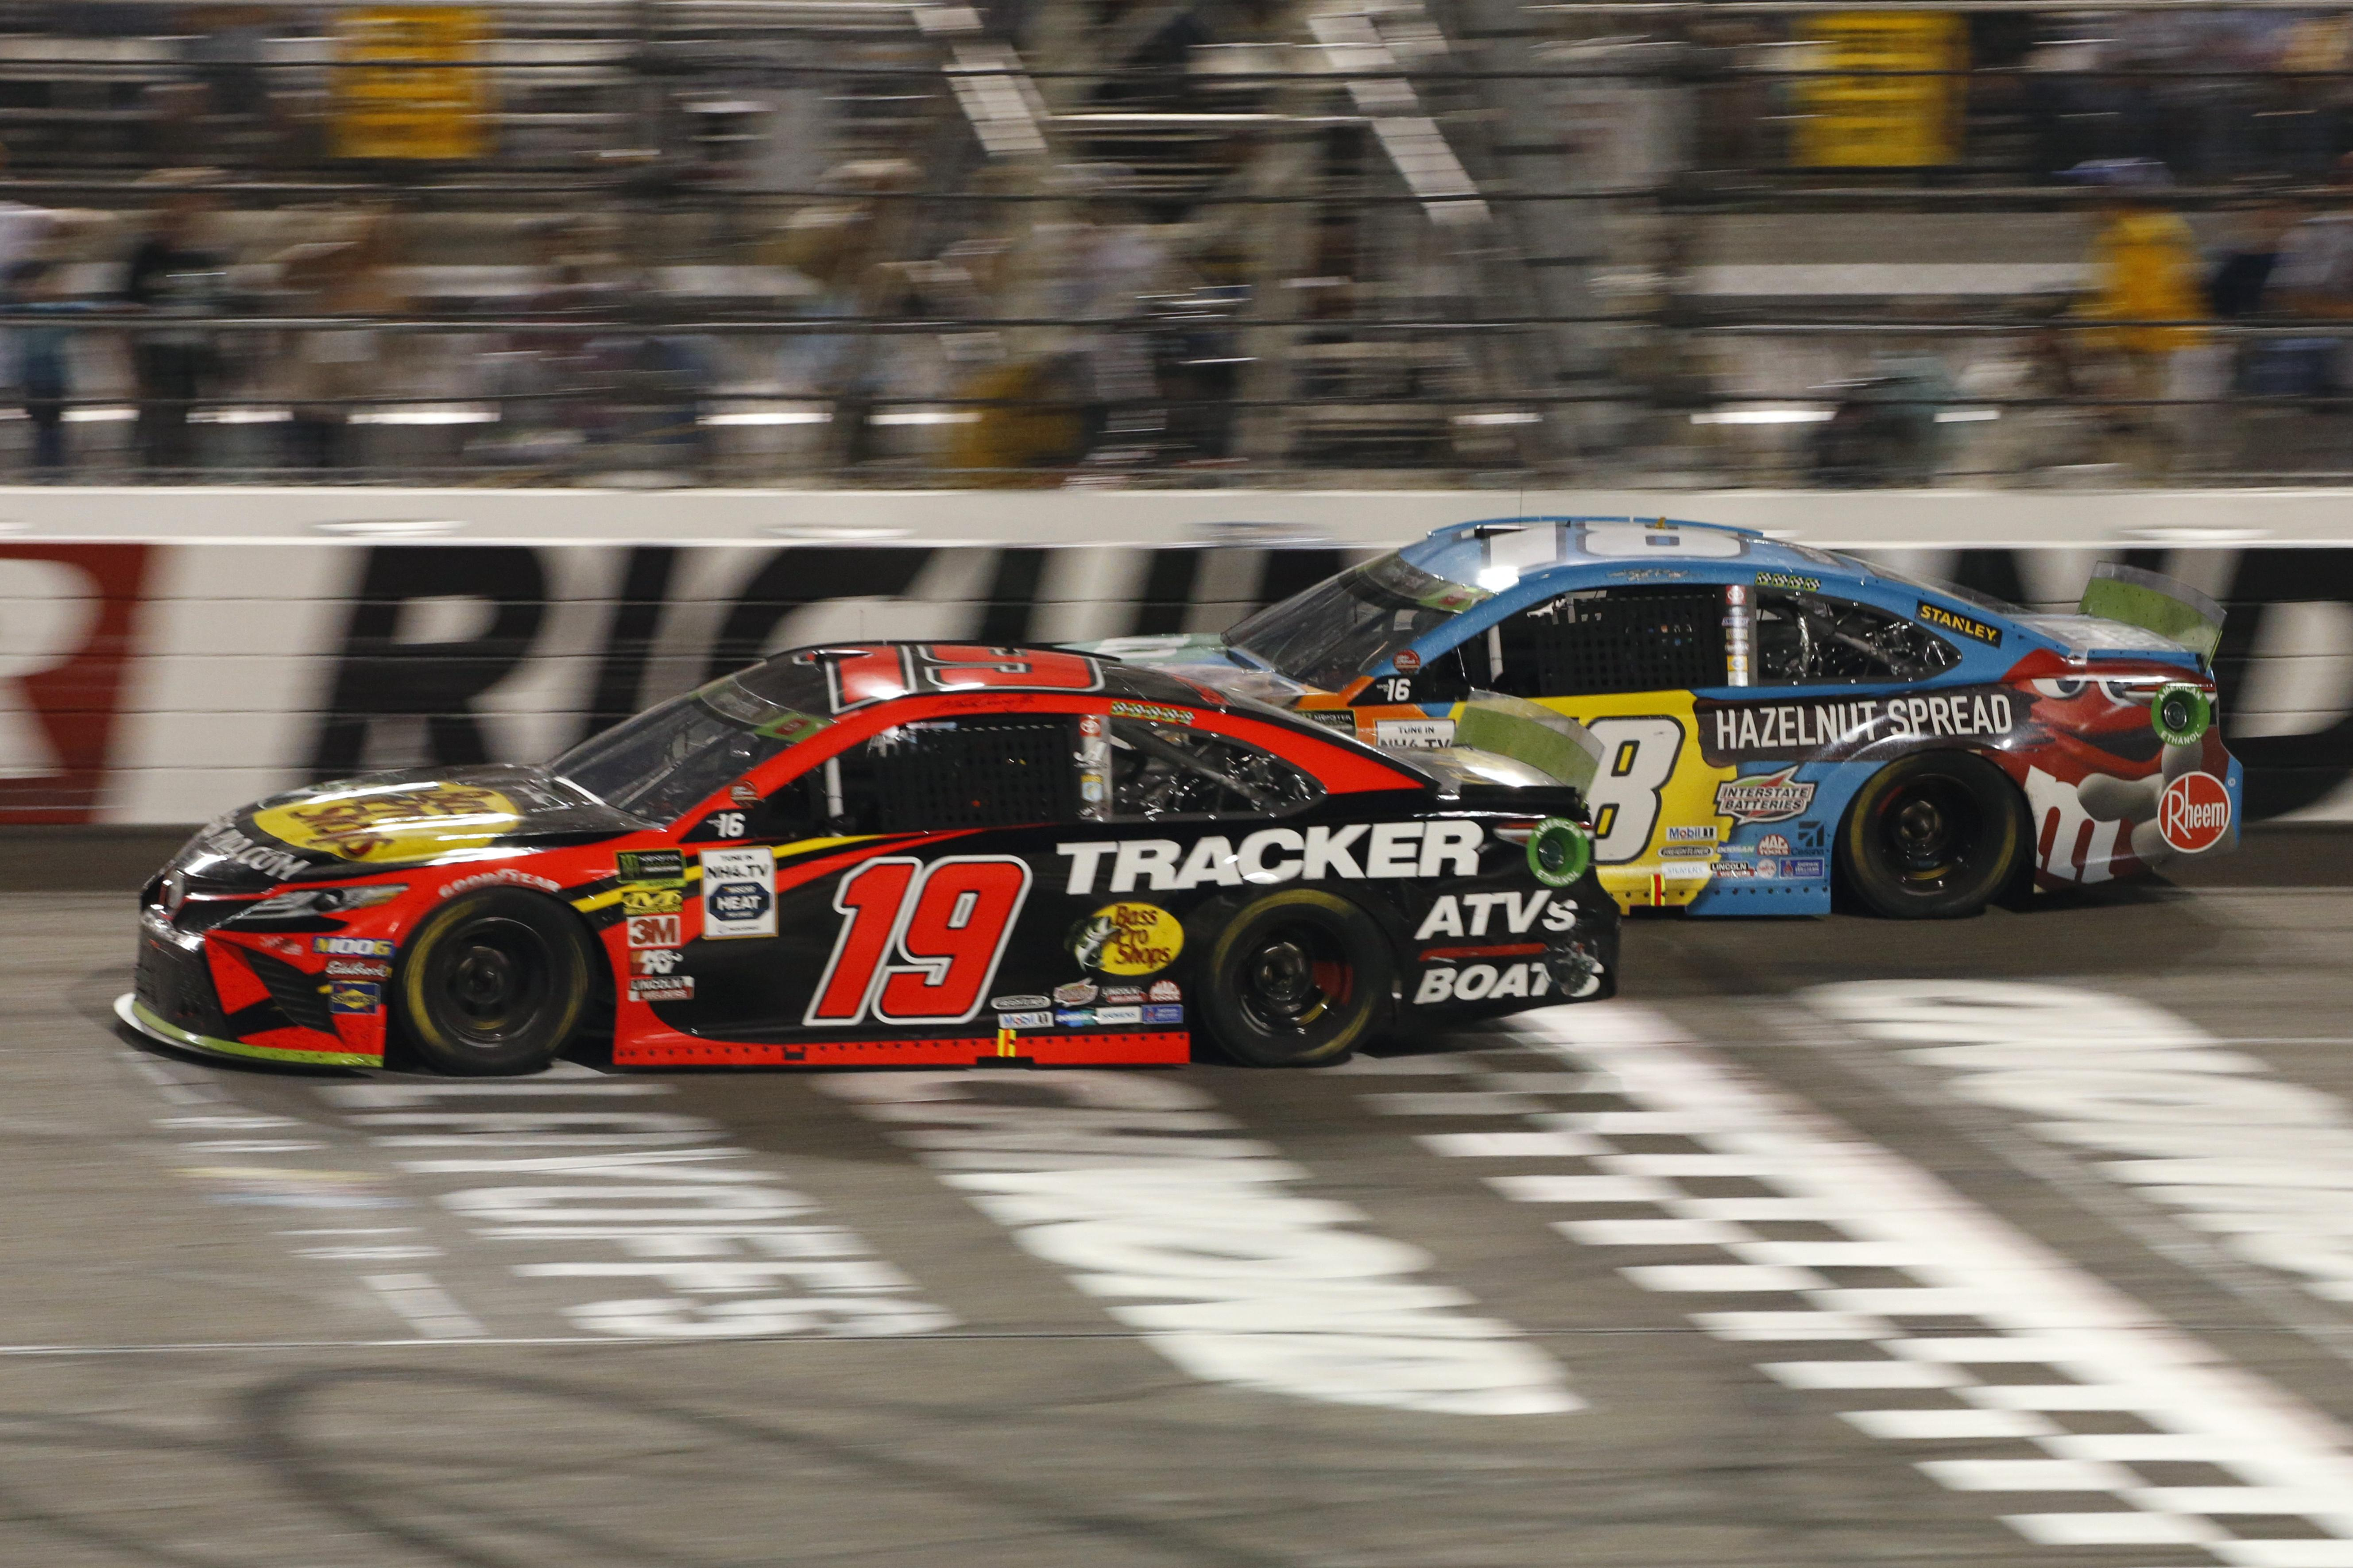 Martin Truex Jr. Goes Back-to-Back in Playoffs with Richmond Win